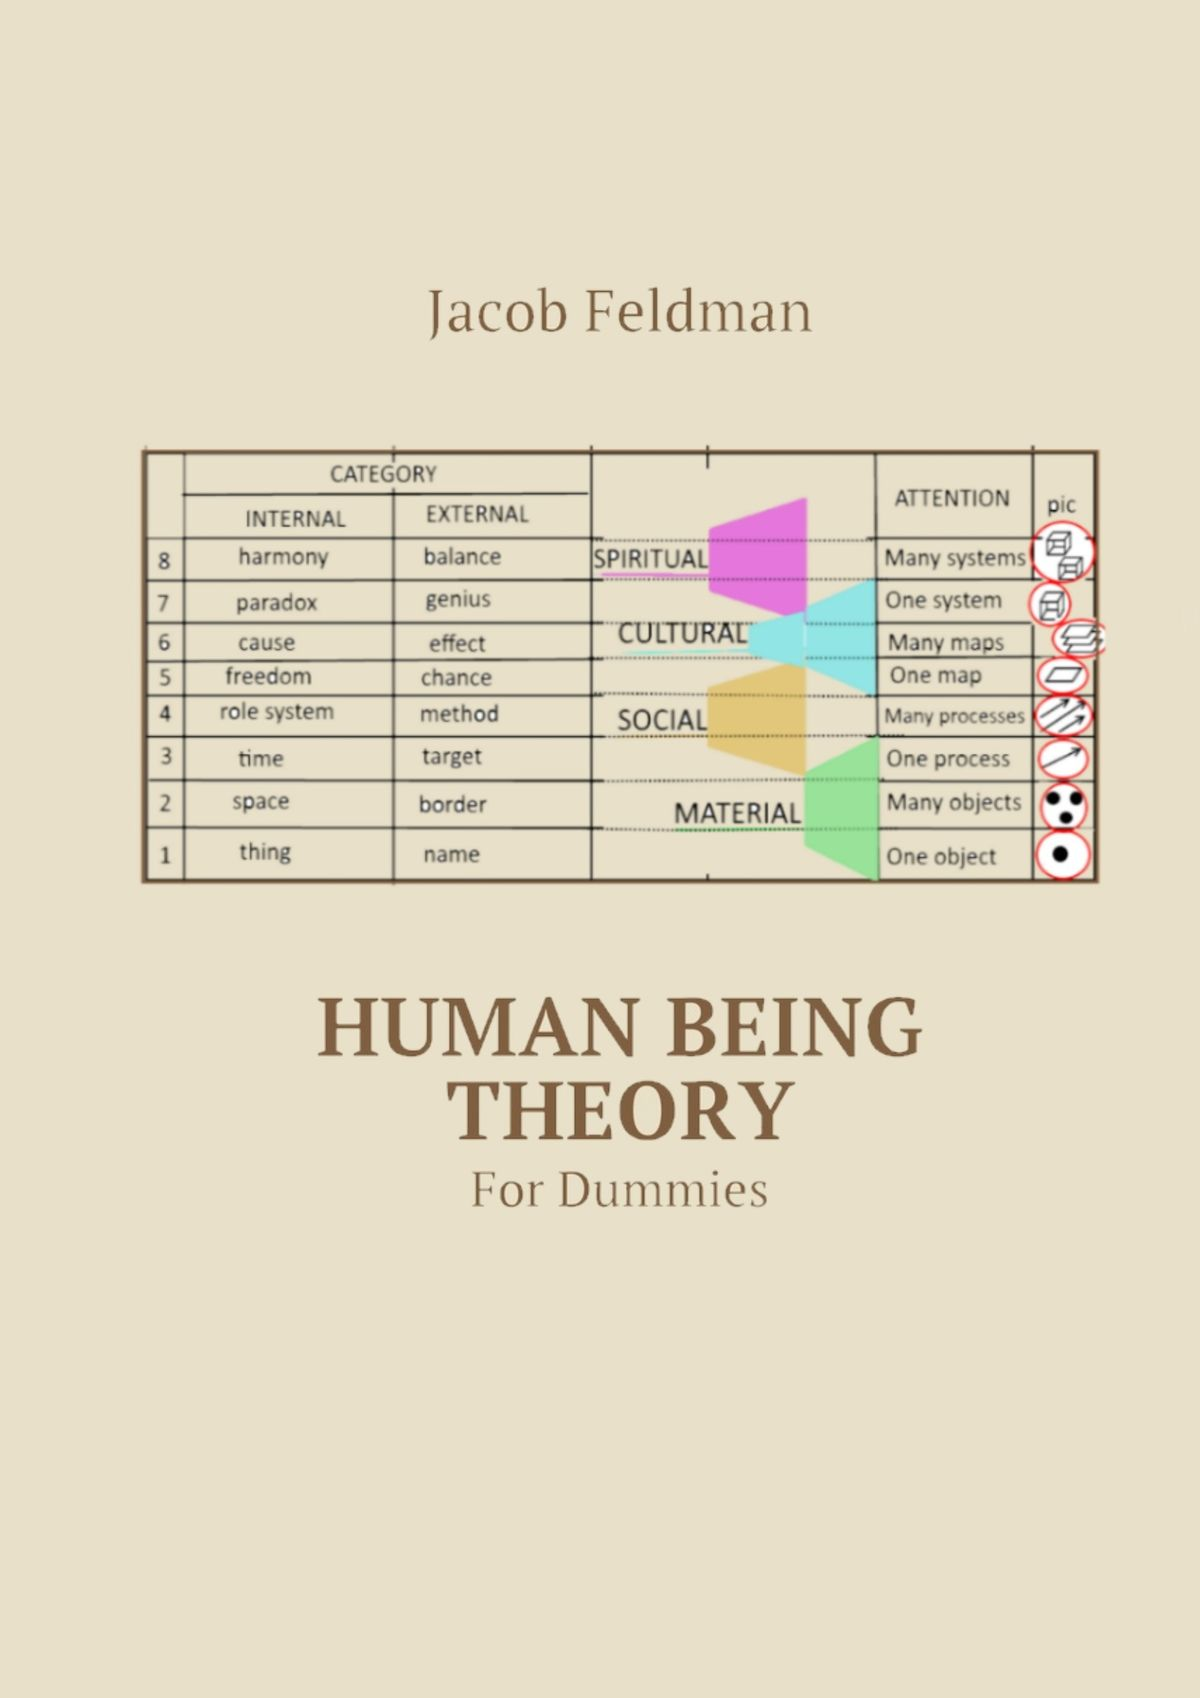 Jacob Feldman Human Being Theory. For Dummies endocrine organ model model of human organs pituitary thyroid adrenal testicular endocrinology teaching model